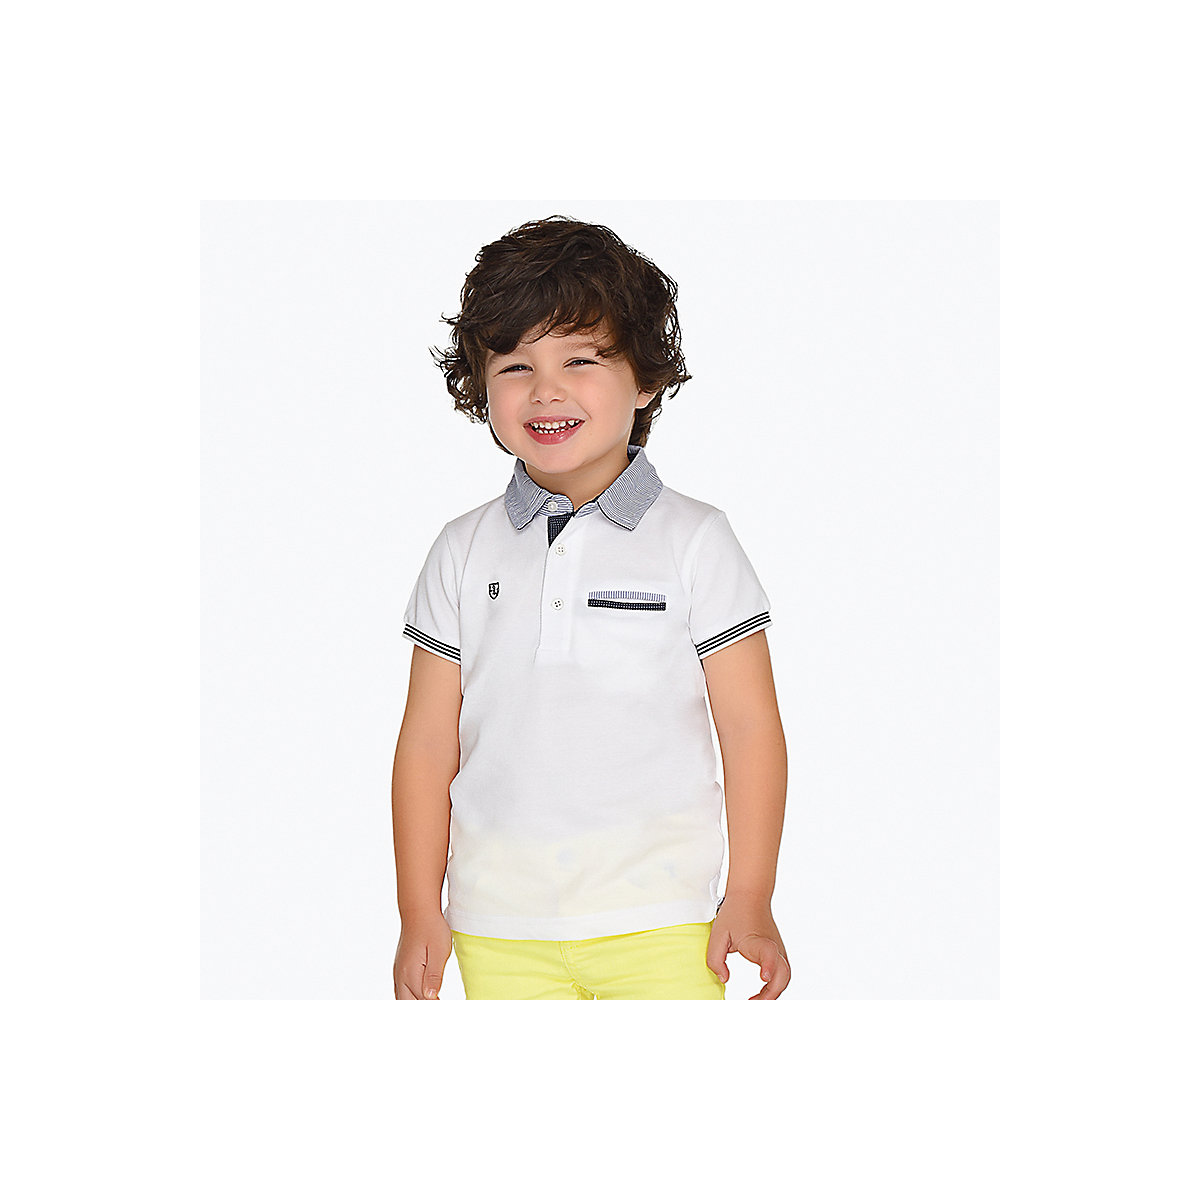 T-Shirts MAYORAL 10691204 Children sClothing T-shirt with short sleeves polo shirt for boys and girls black cold shoulder short sleeves t shirts